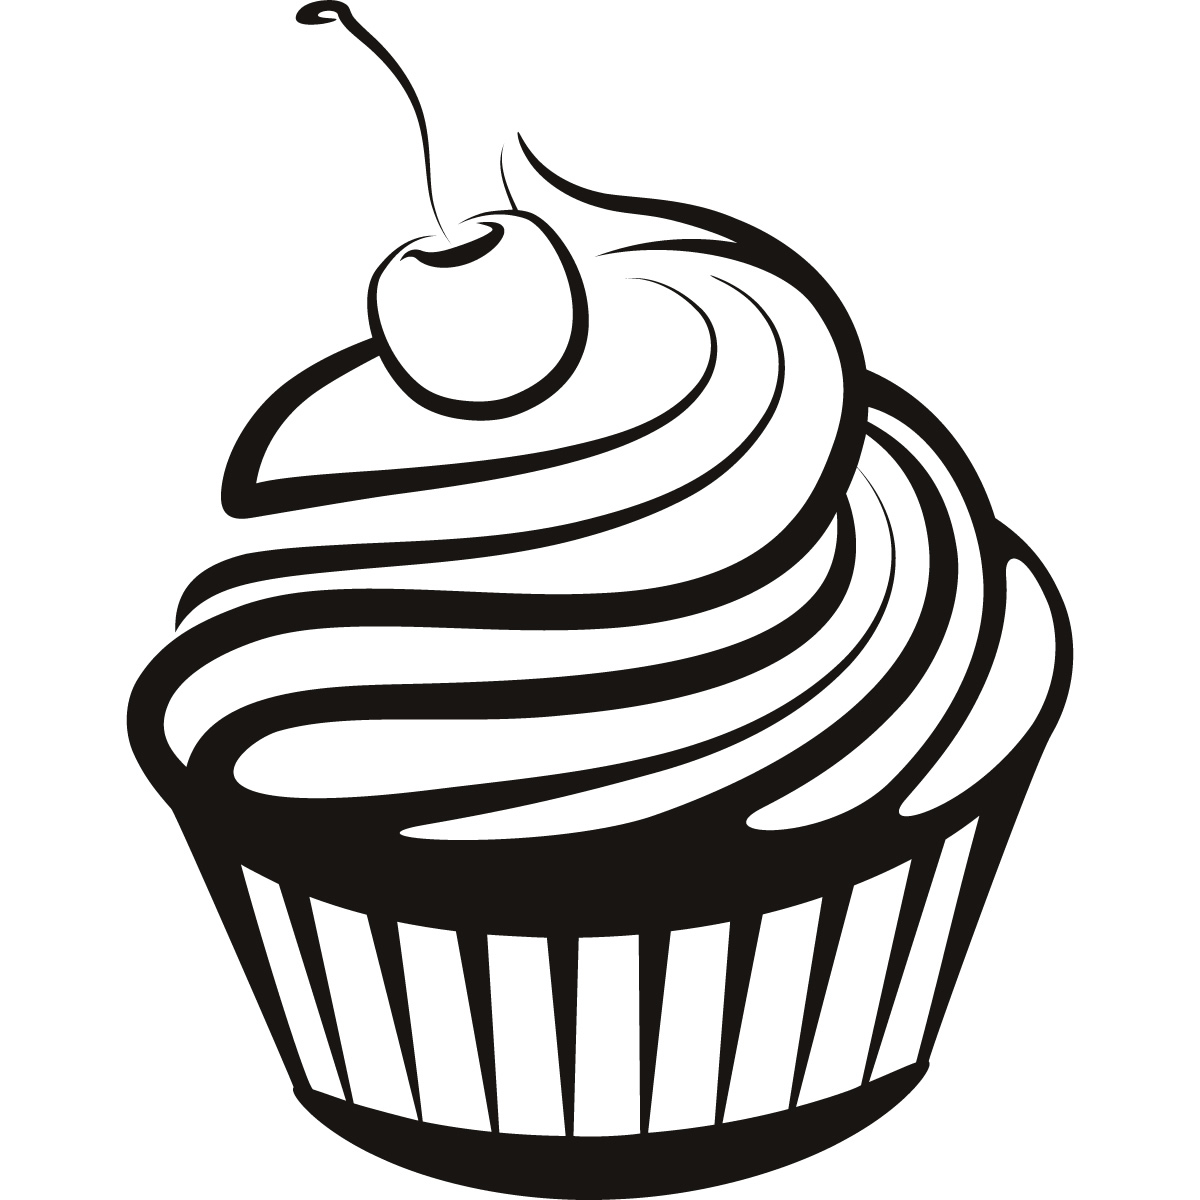 Cupcake black and white cupcake drawings and cupcakes clipart ... clip art free download